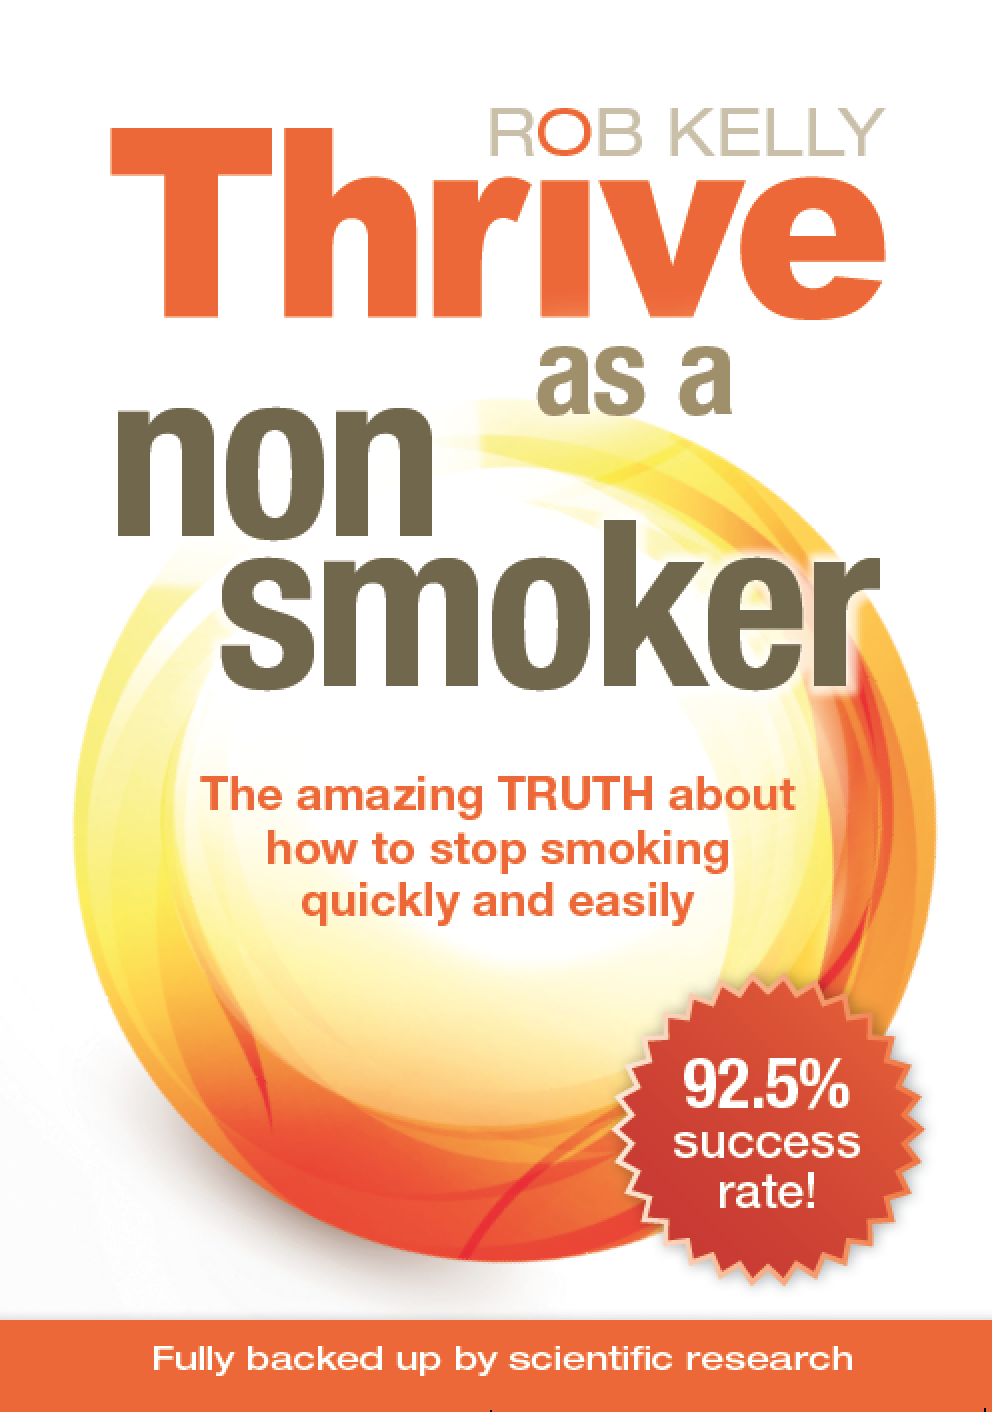 Screen-Shot-2013-09-02-at-15.01.26 Thrive as a non-smoker - programme now available as a workbook.